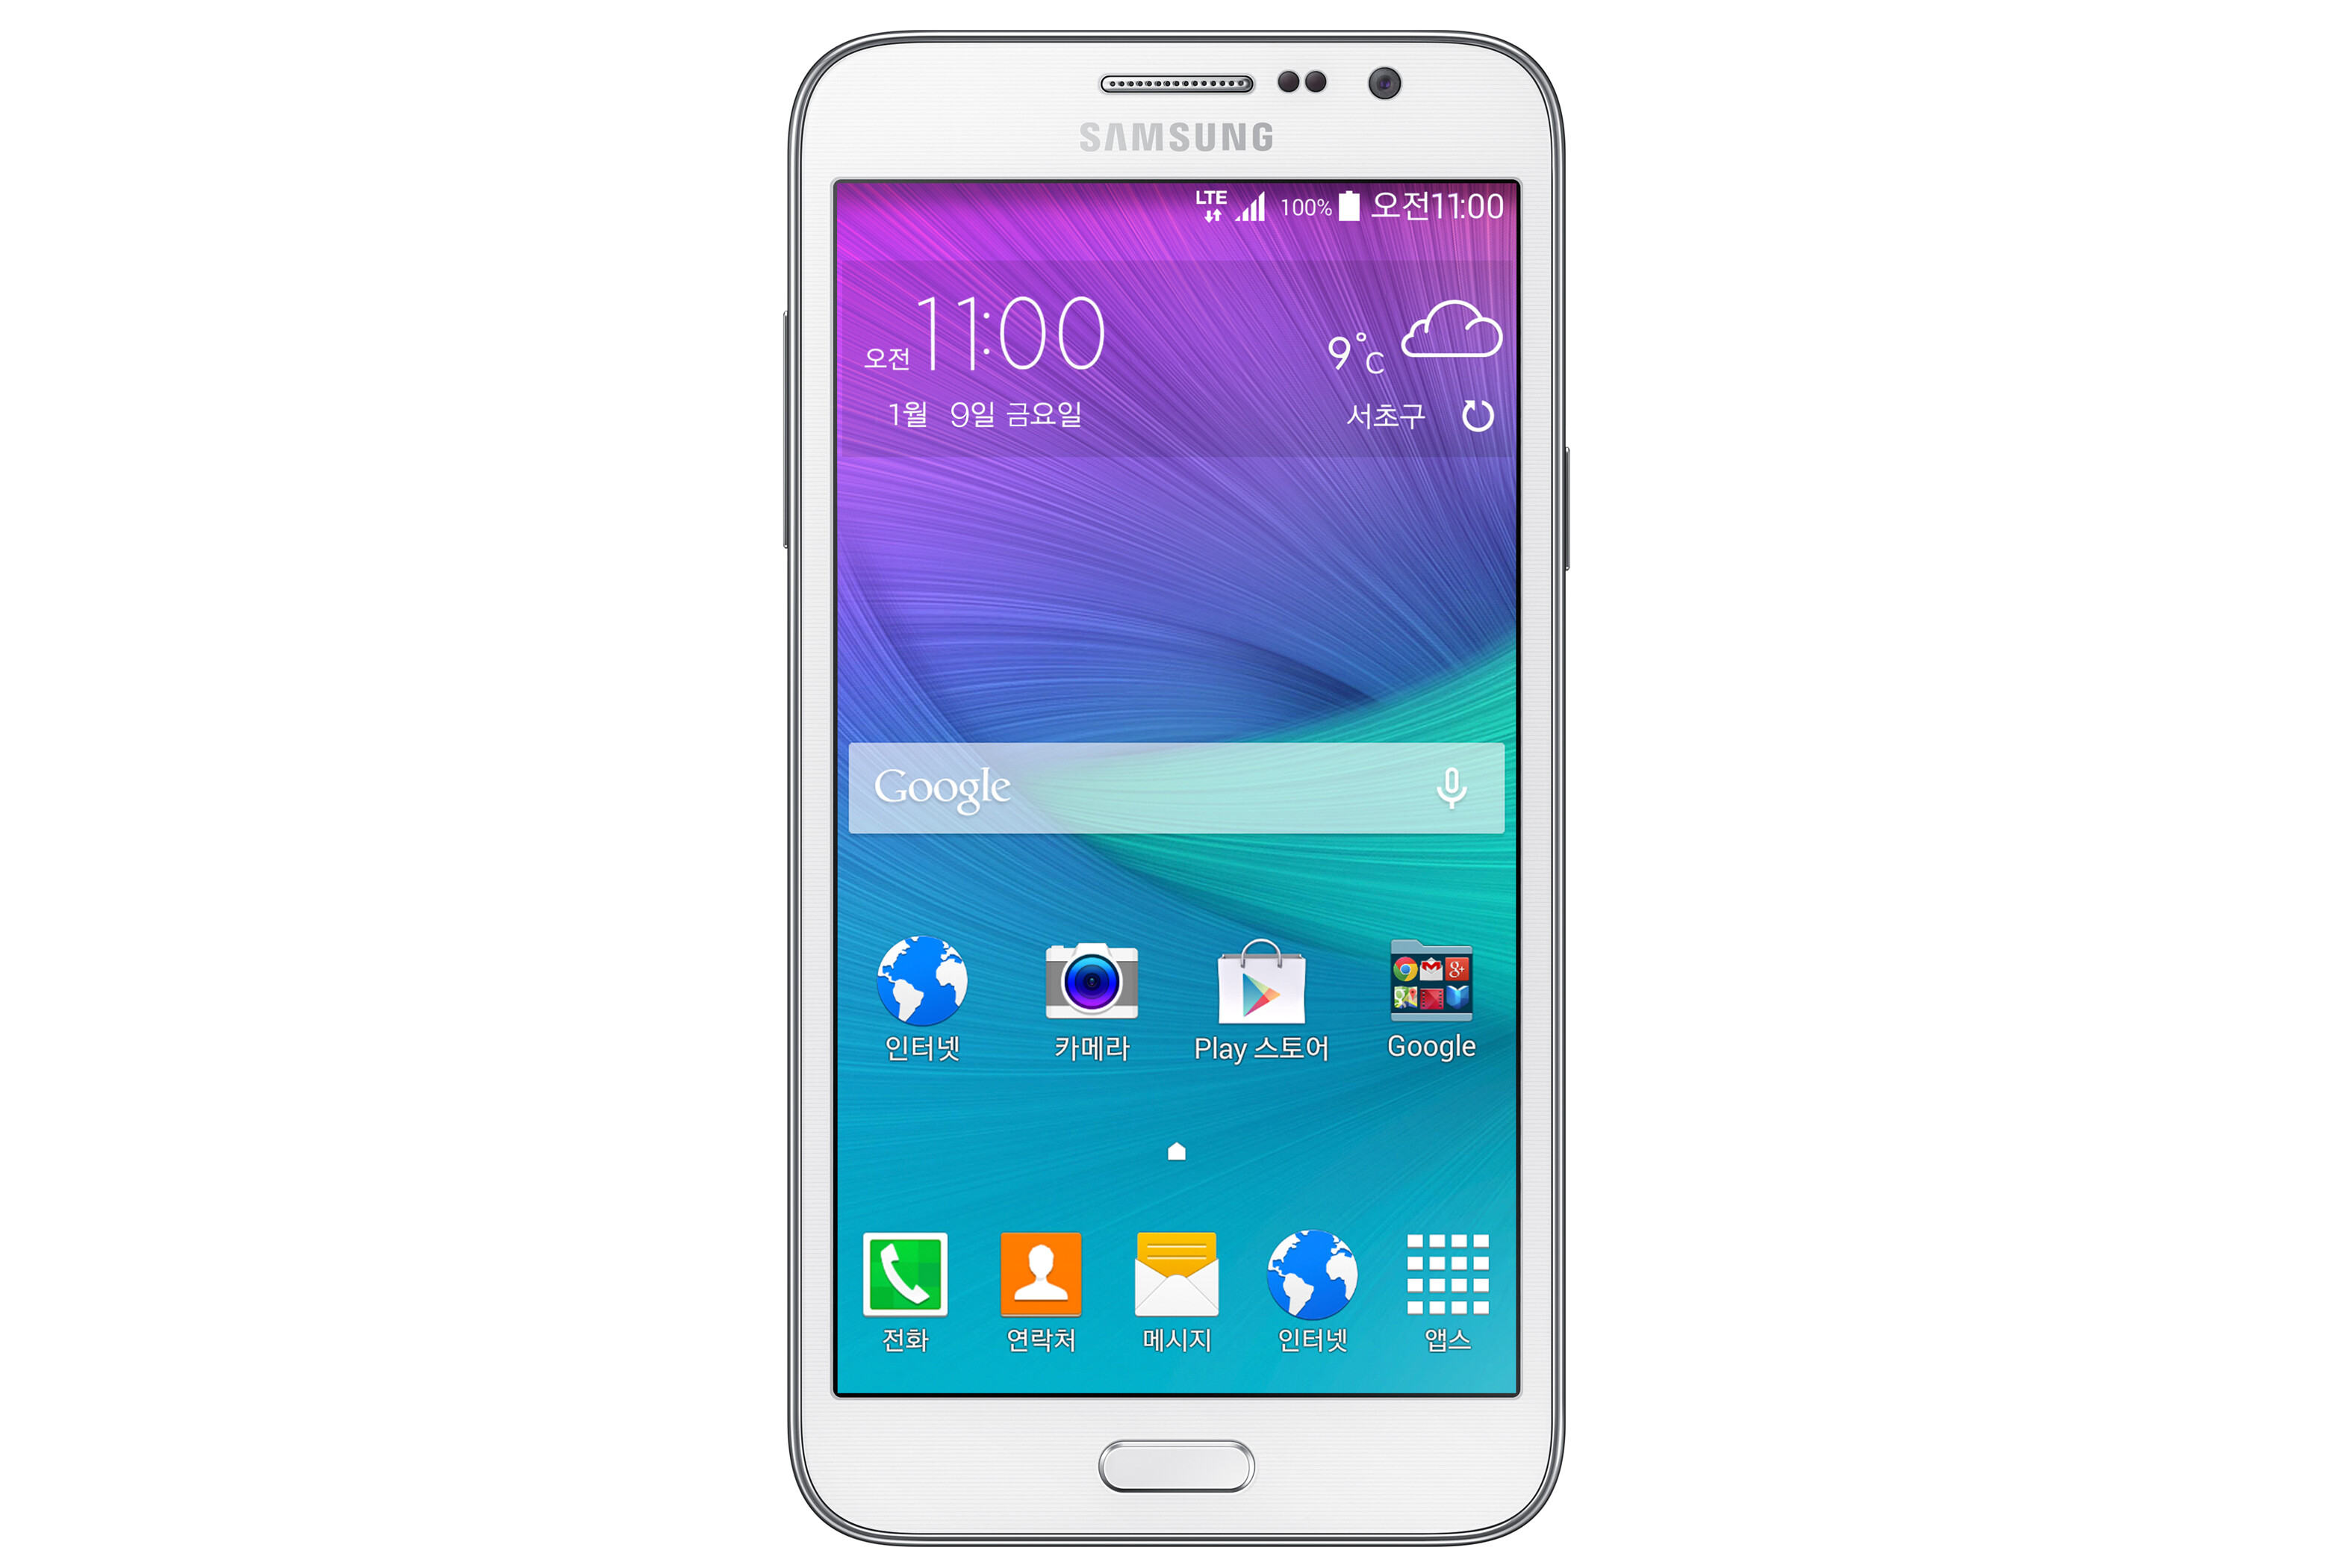 Samsung galaxy photo recovery dr fone